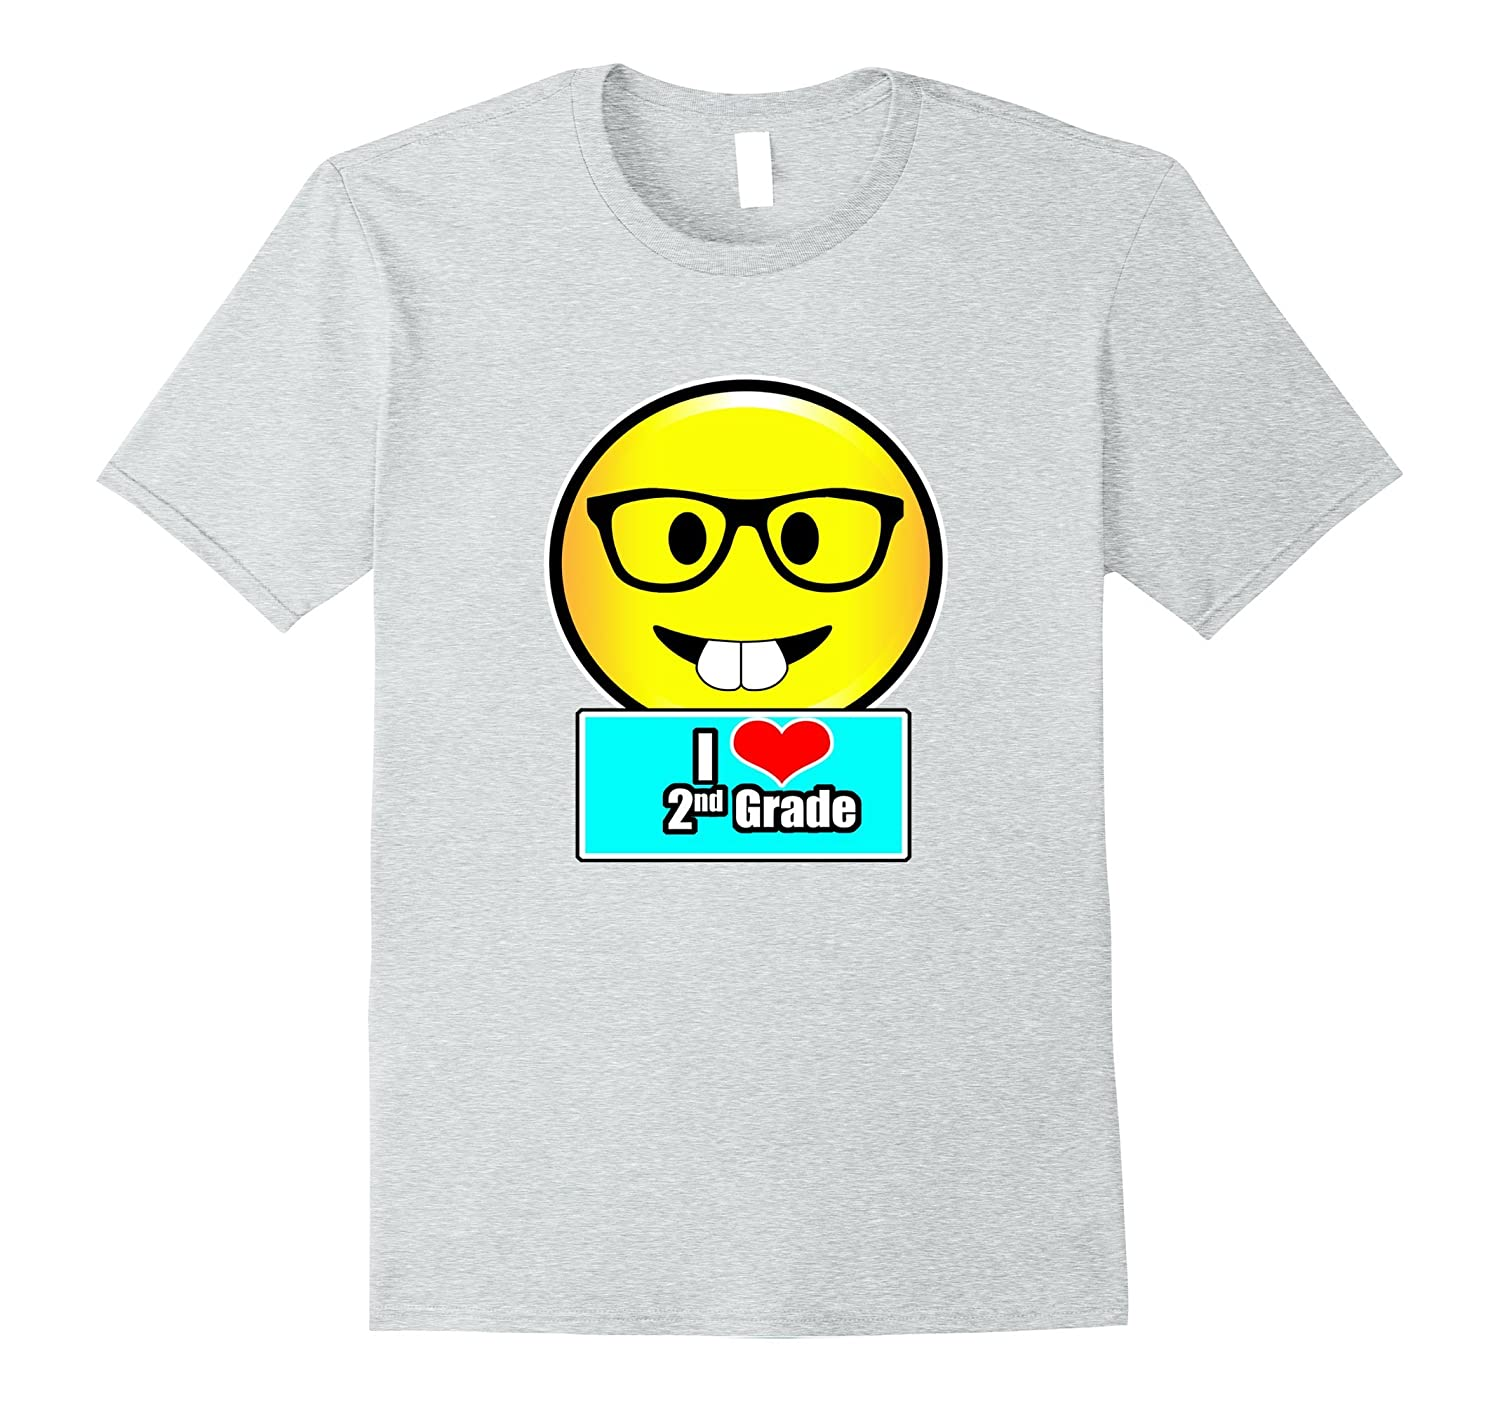 452e677f I Love 2nd Grade Emoji Kids or Teacher In Second Grade Shirt-PL ...